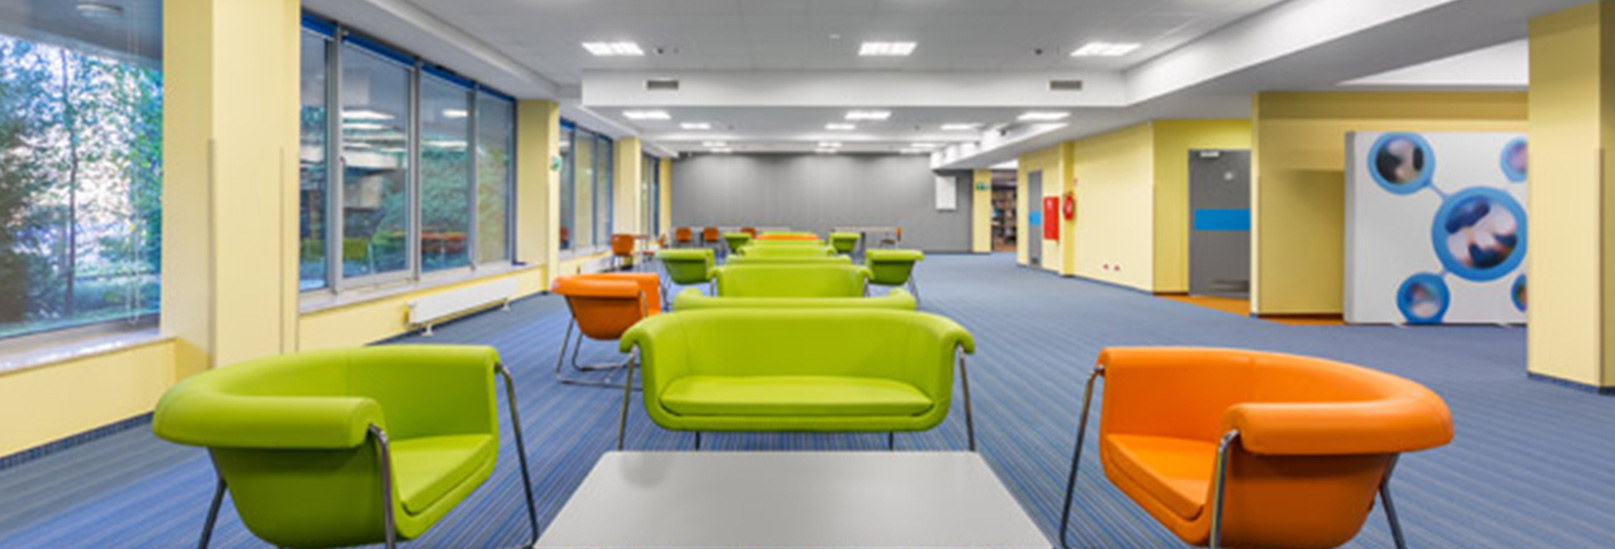 How better acoustics play a role in improving workplace productivity